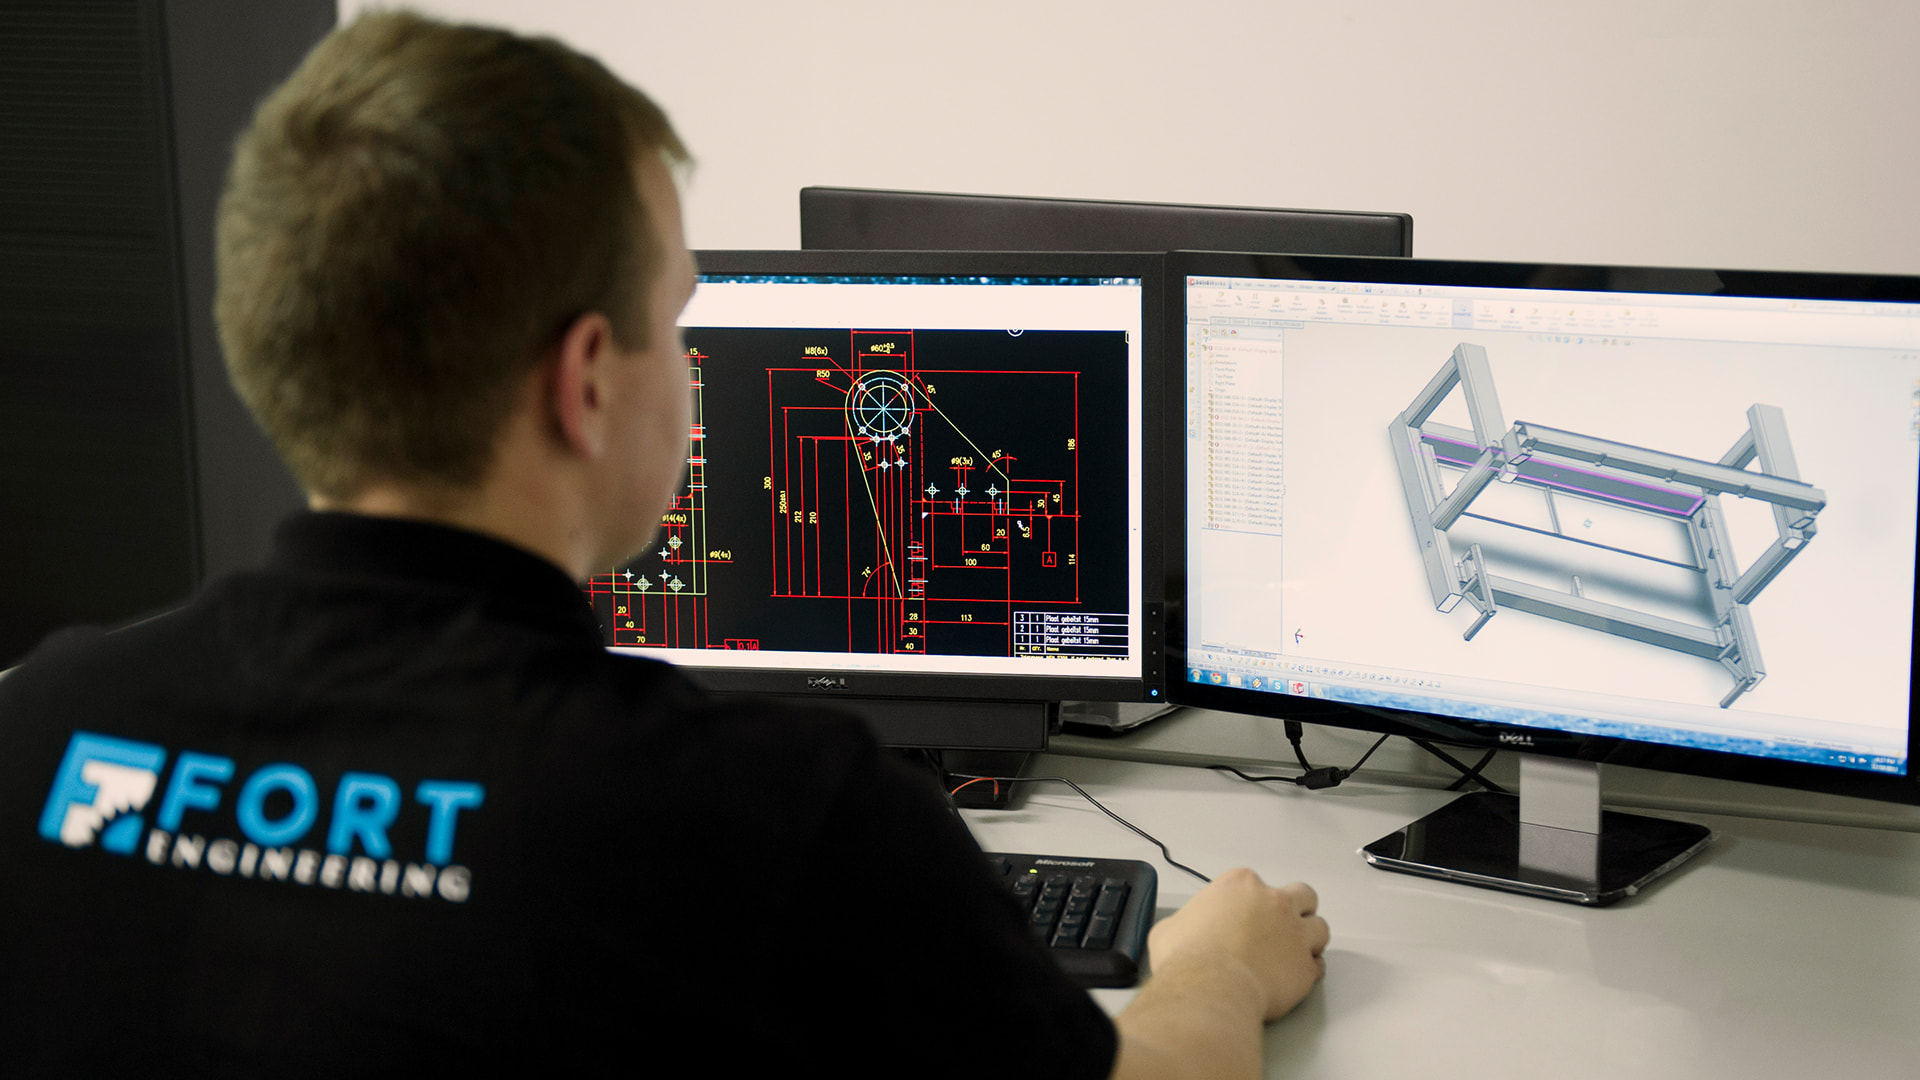 FORT Engineering - design and conversion services